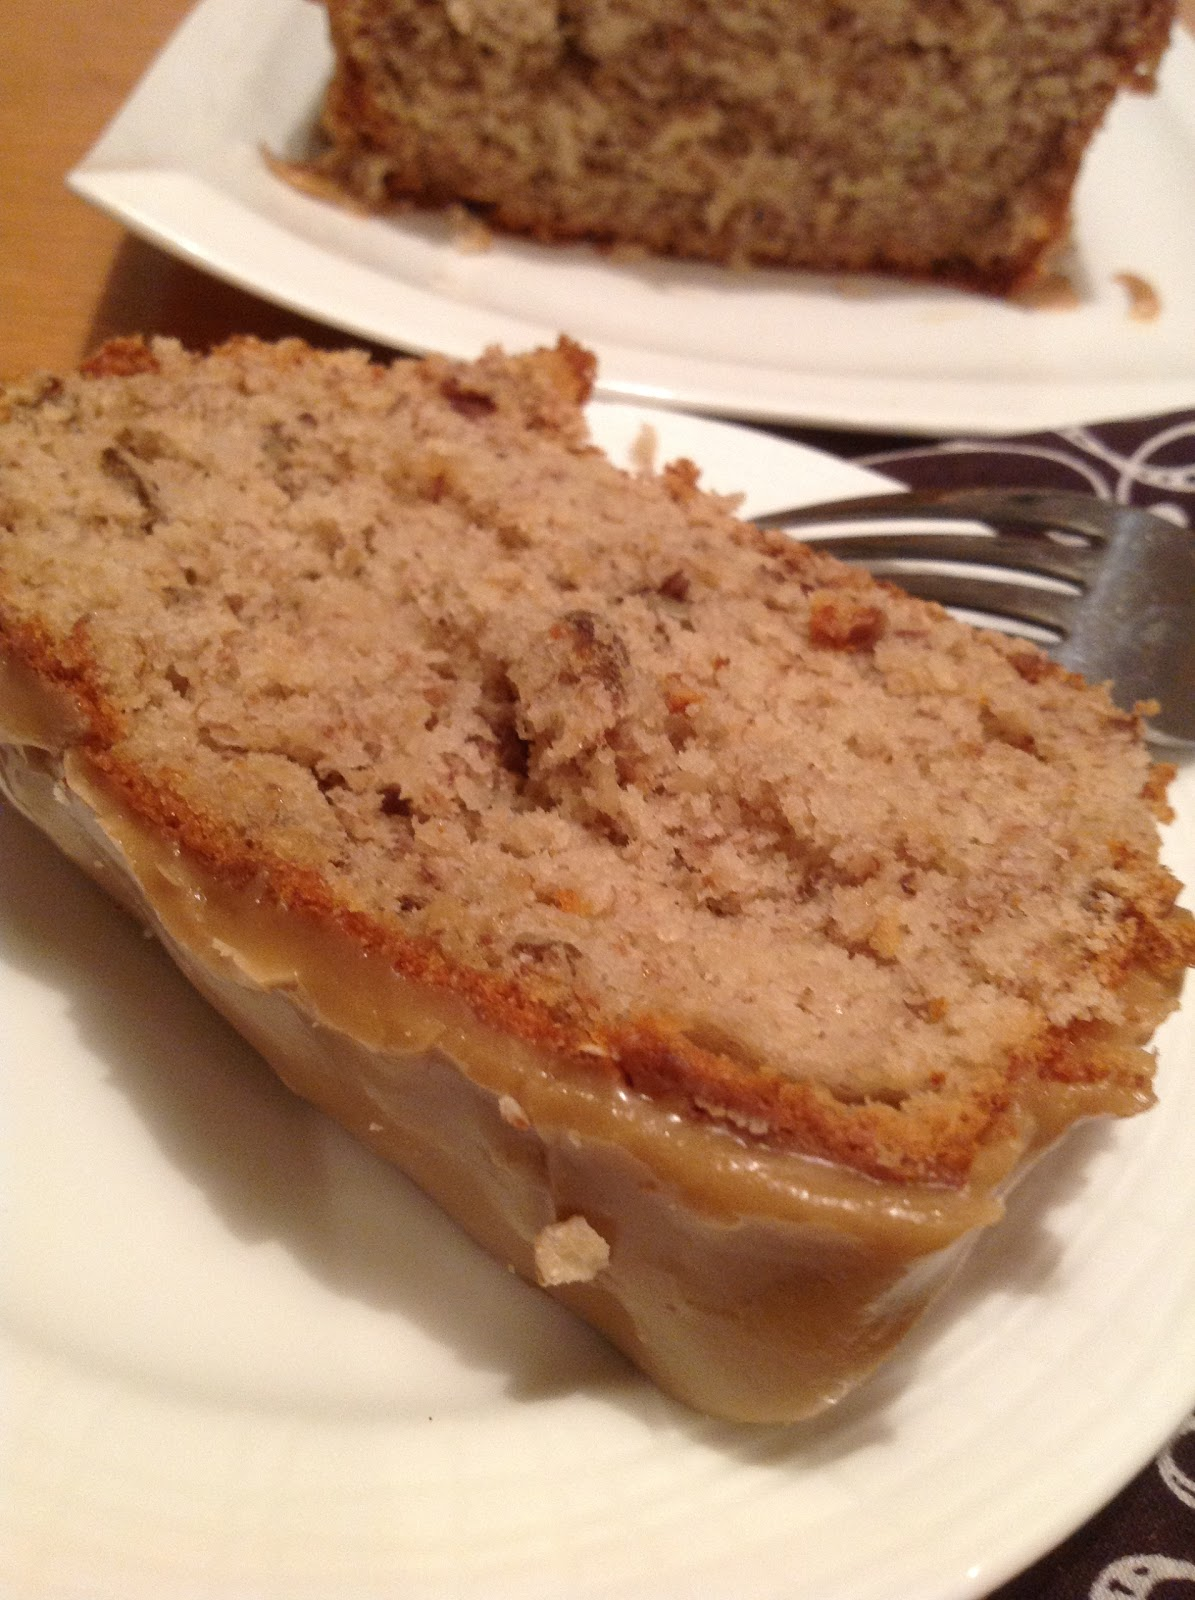 ... ripe bananas make banana bread here is a super easy banana nut bread